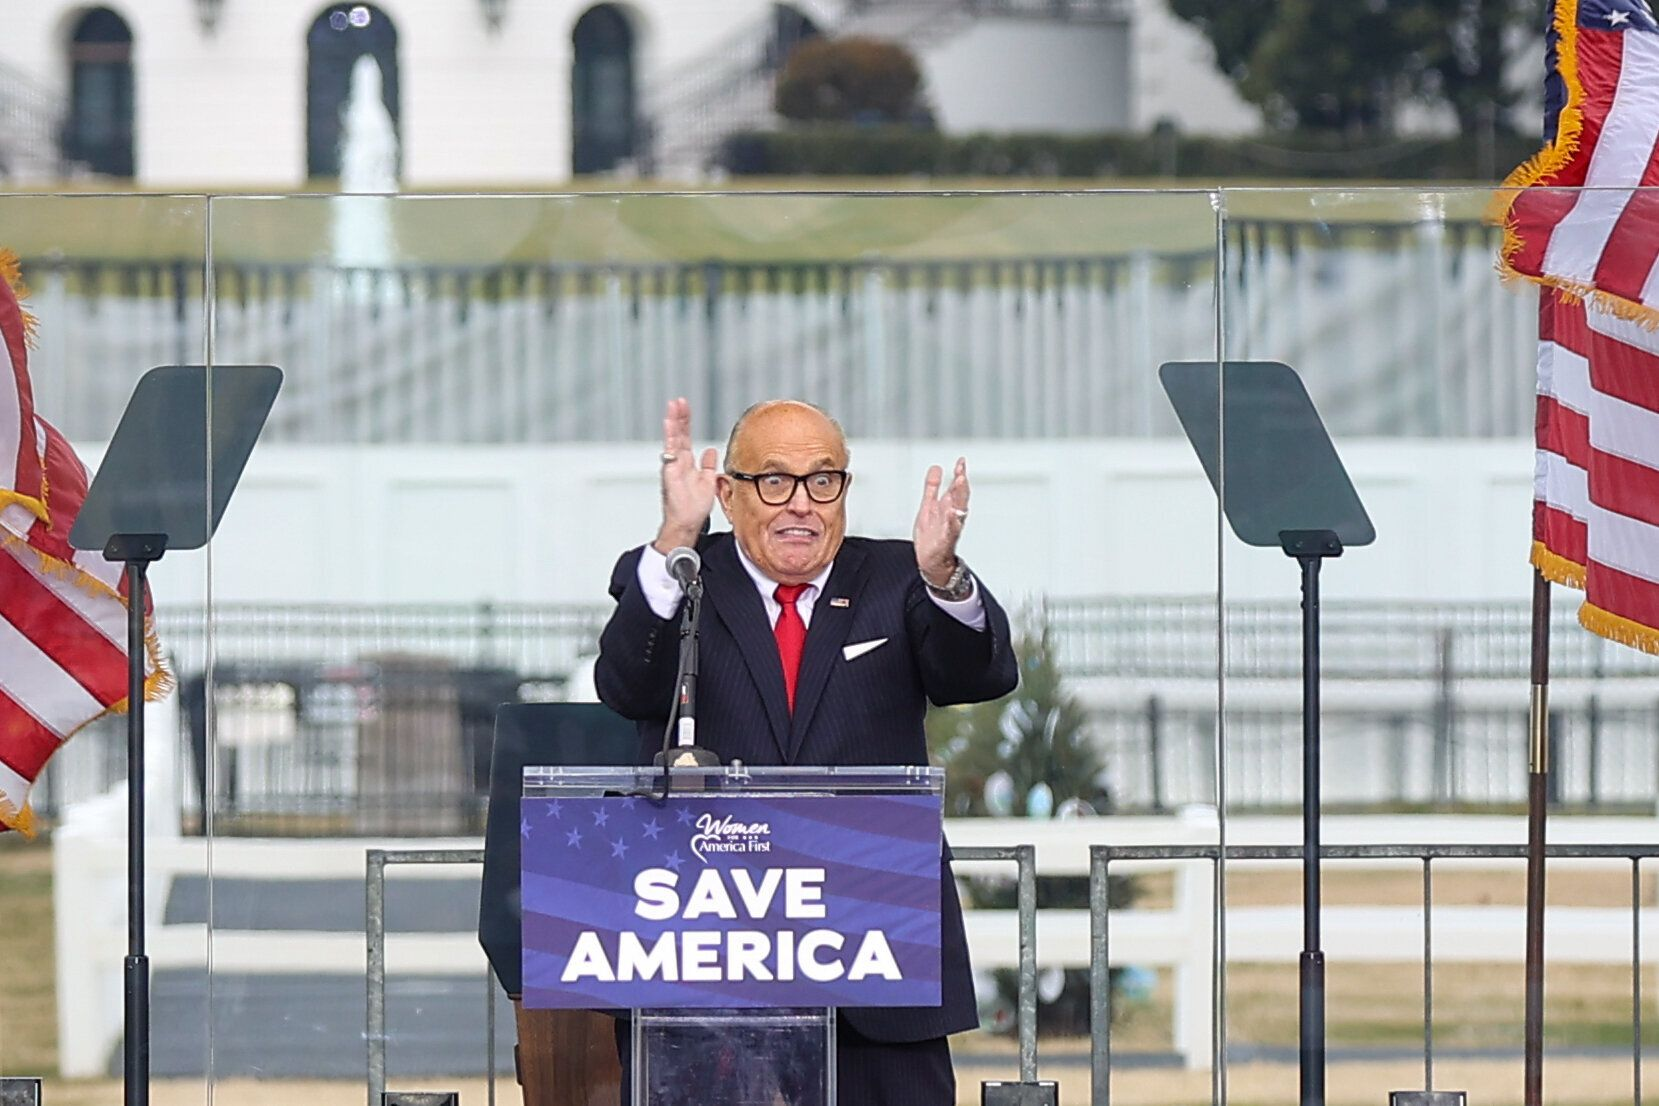 """Rudy Giuliani appeared at the Jan. 6 """"Save America Rally"""" near the White House, which sparked the insurrection at the U.S. Ca"""